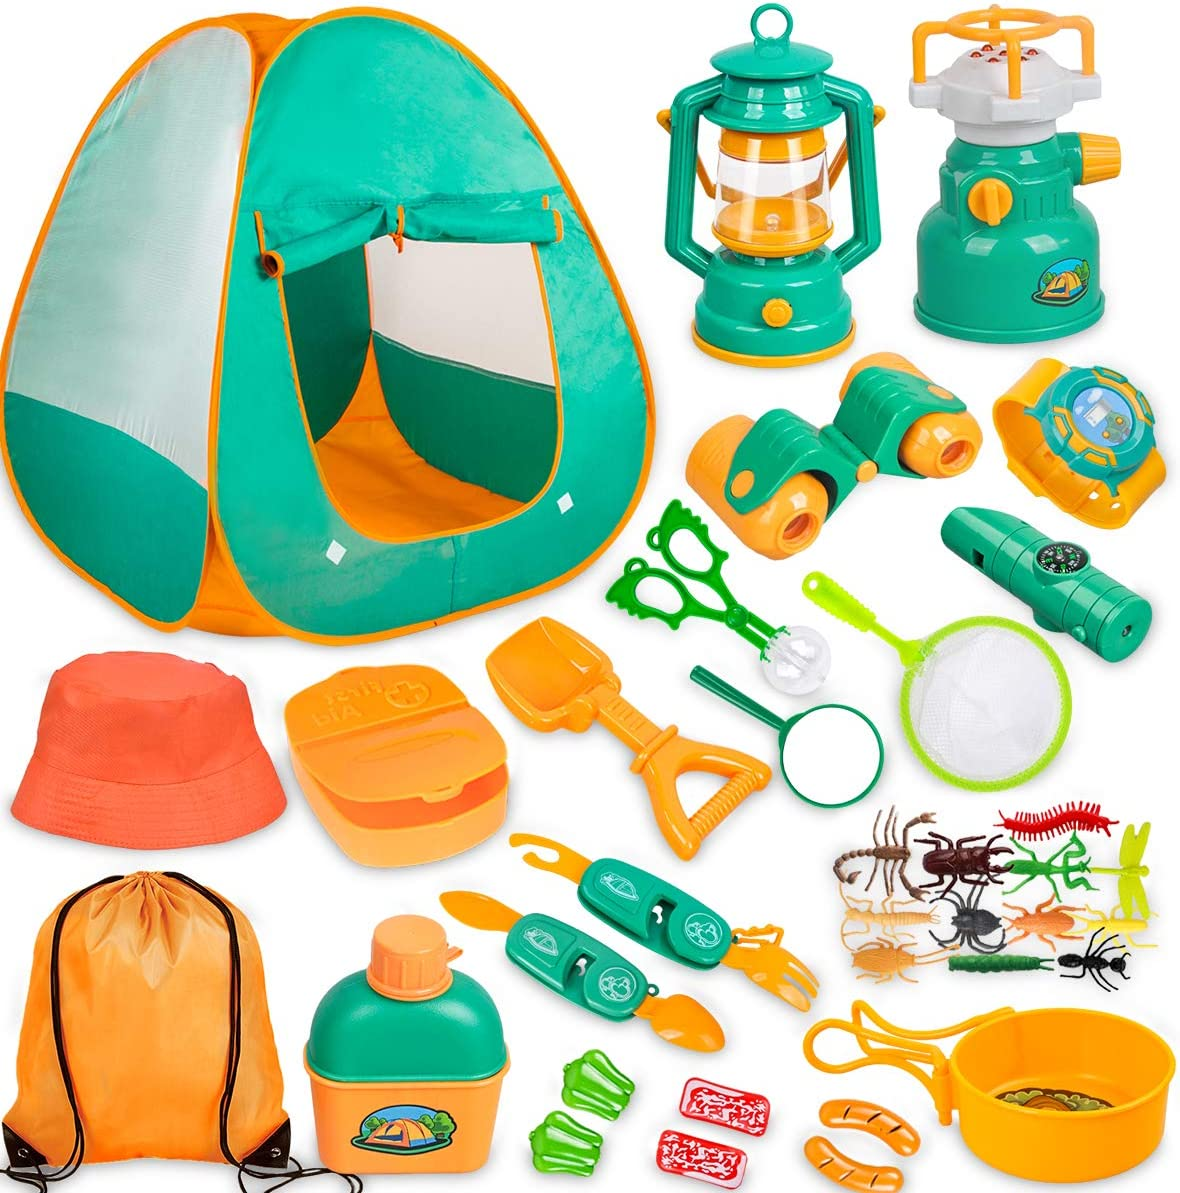 Inexpensive Phoenix Mall Meland Kids Camping Set with Tent Gear - Pret Tool 24pcs